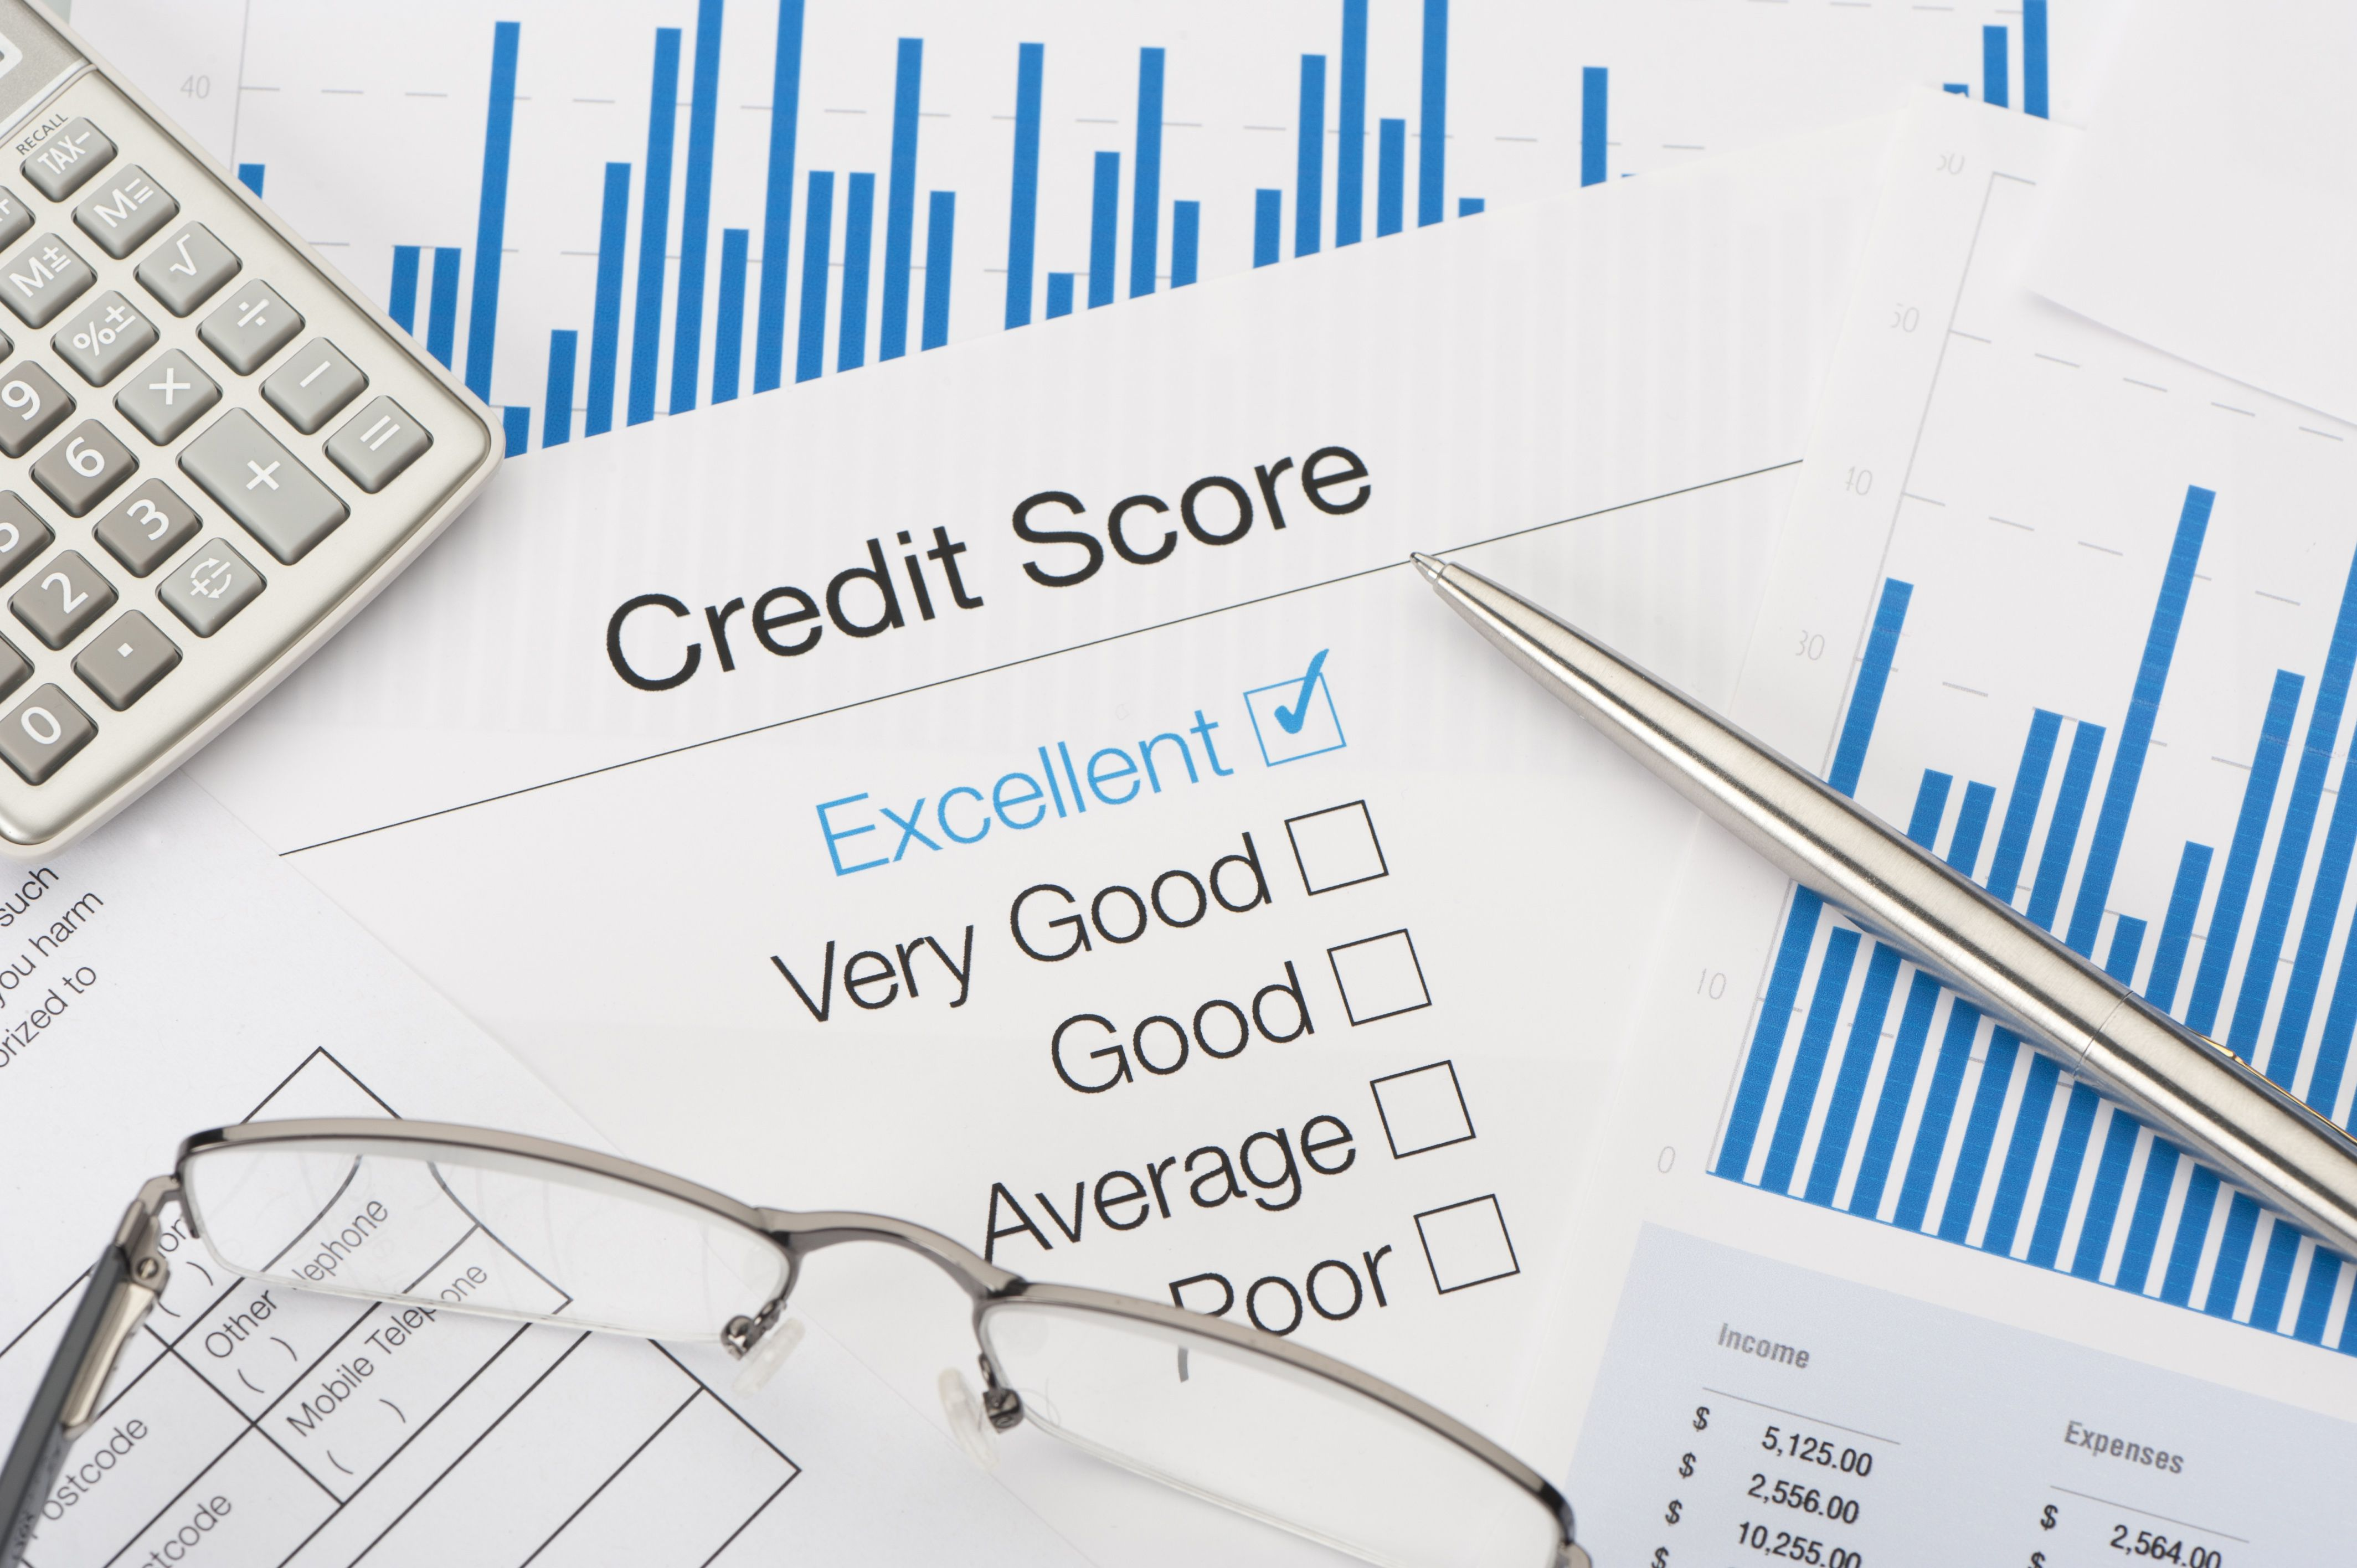 Sheet with credit score check boxes and